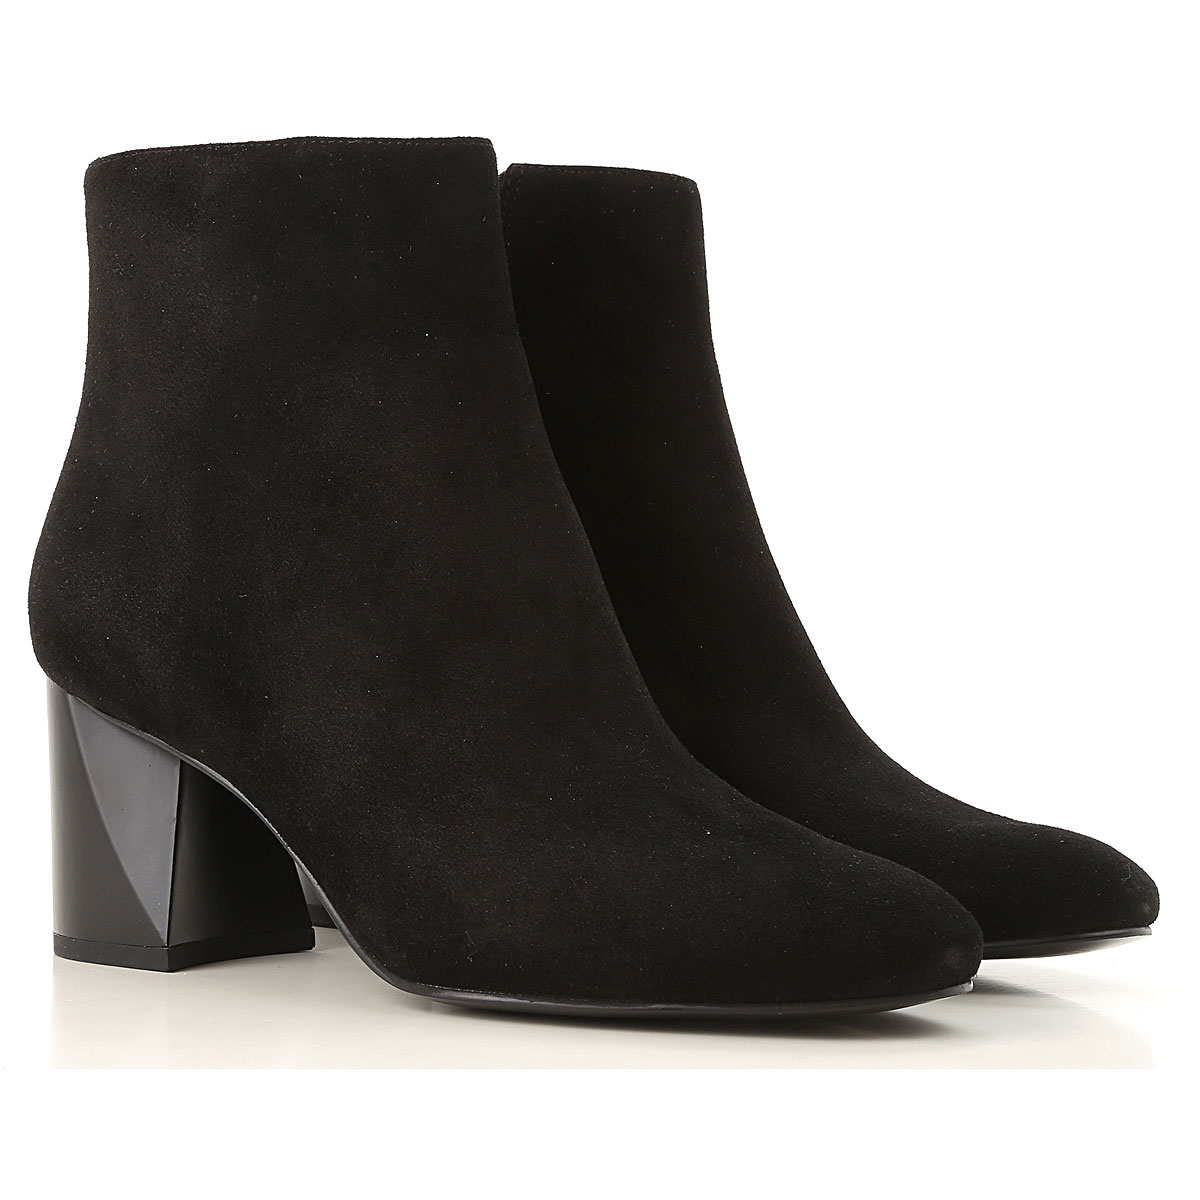 Kendall Kylie Boots for Women, Booties On Sale in Outlet, Black, Suede leather, 2019, 6